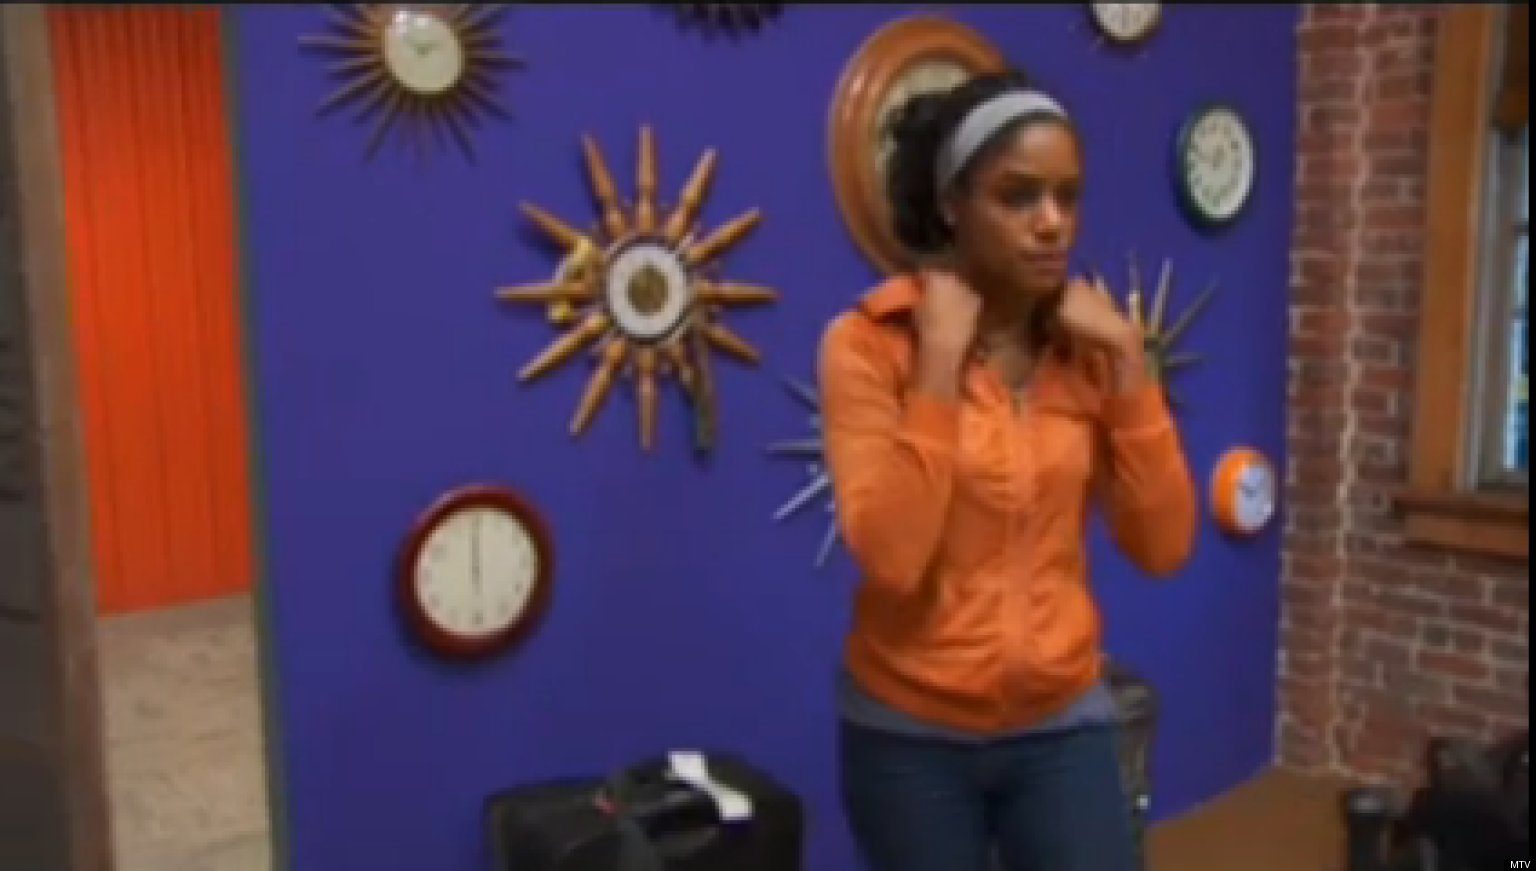 39 The Real World Portland 39 Nia Packs Up As Roommates Vote